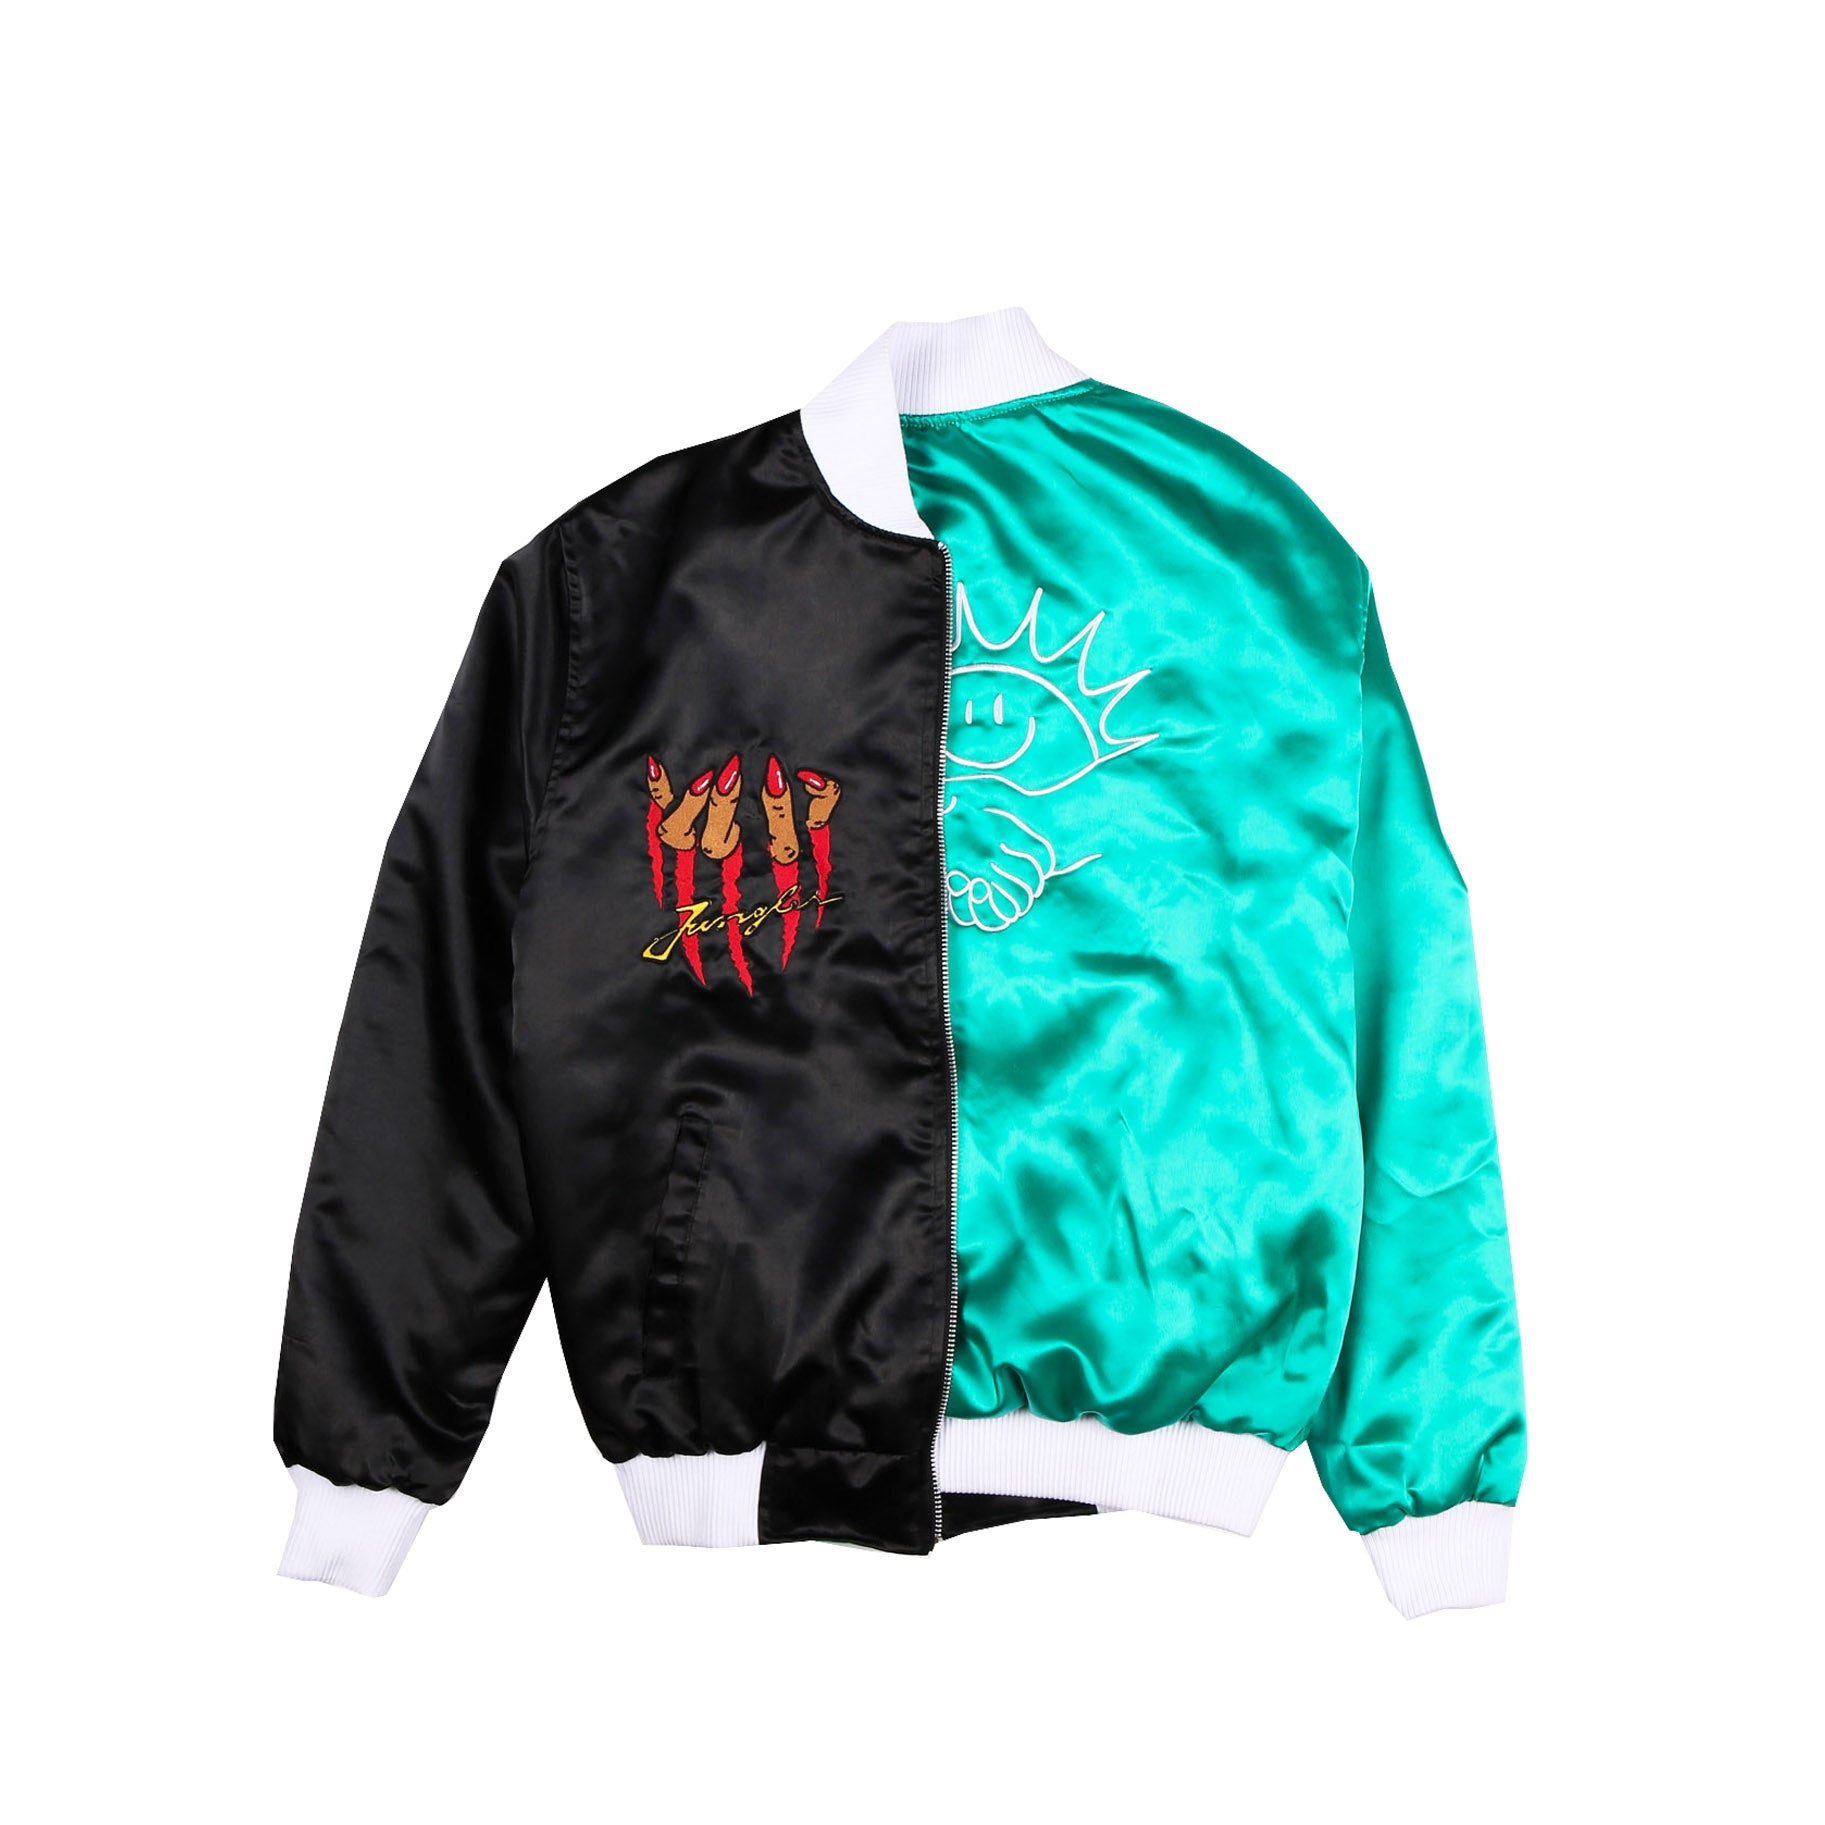 Reversible satin club jacket